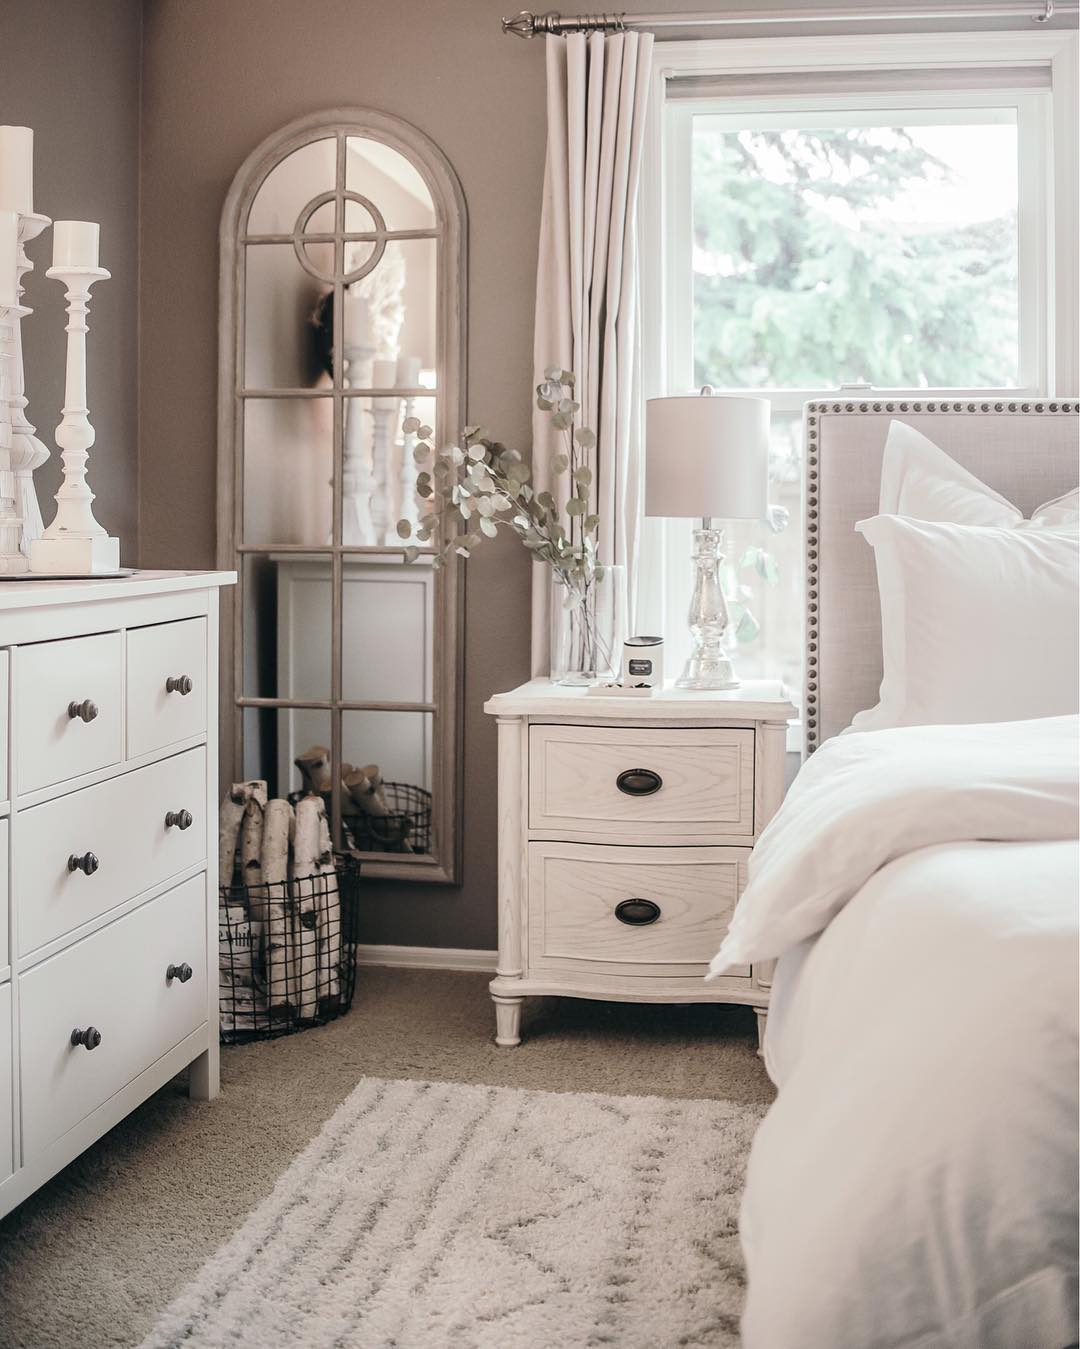 A Bedroom In Calm Tones Of White And